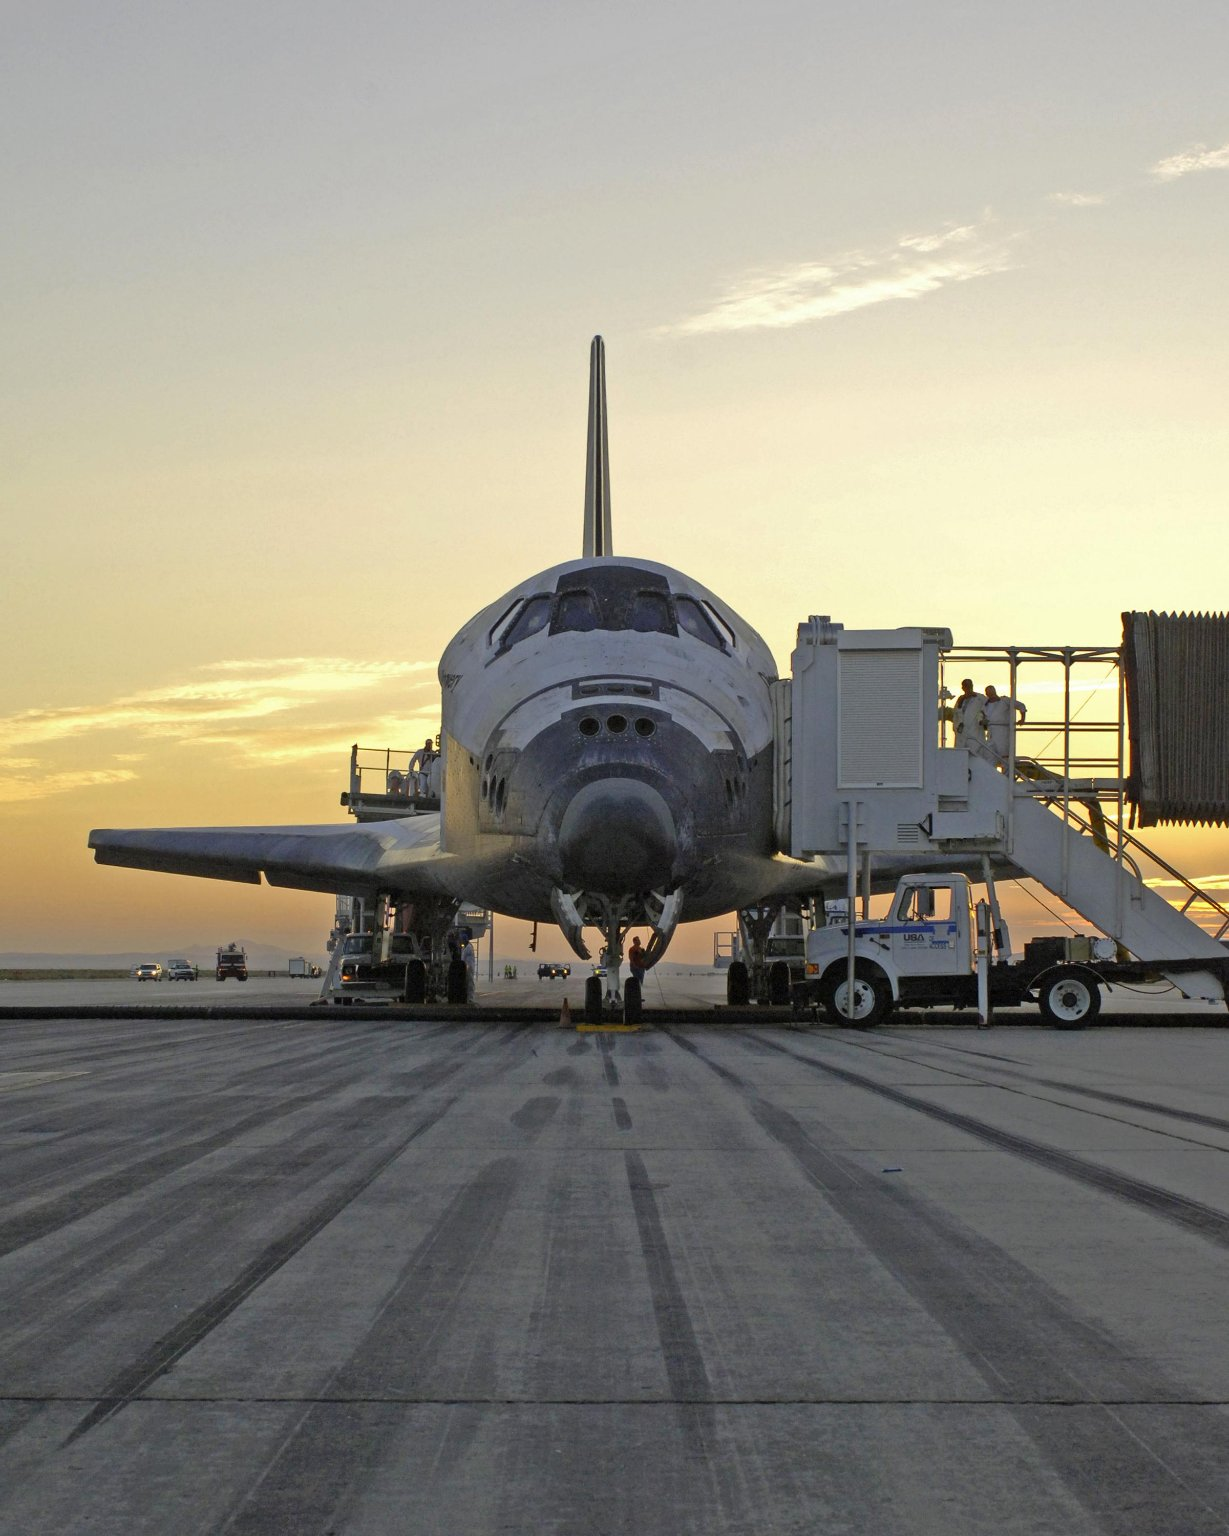 Shuttle Discovery on the Runway at Edwards Air Force Base in California.